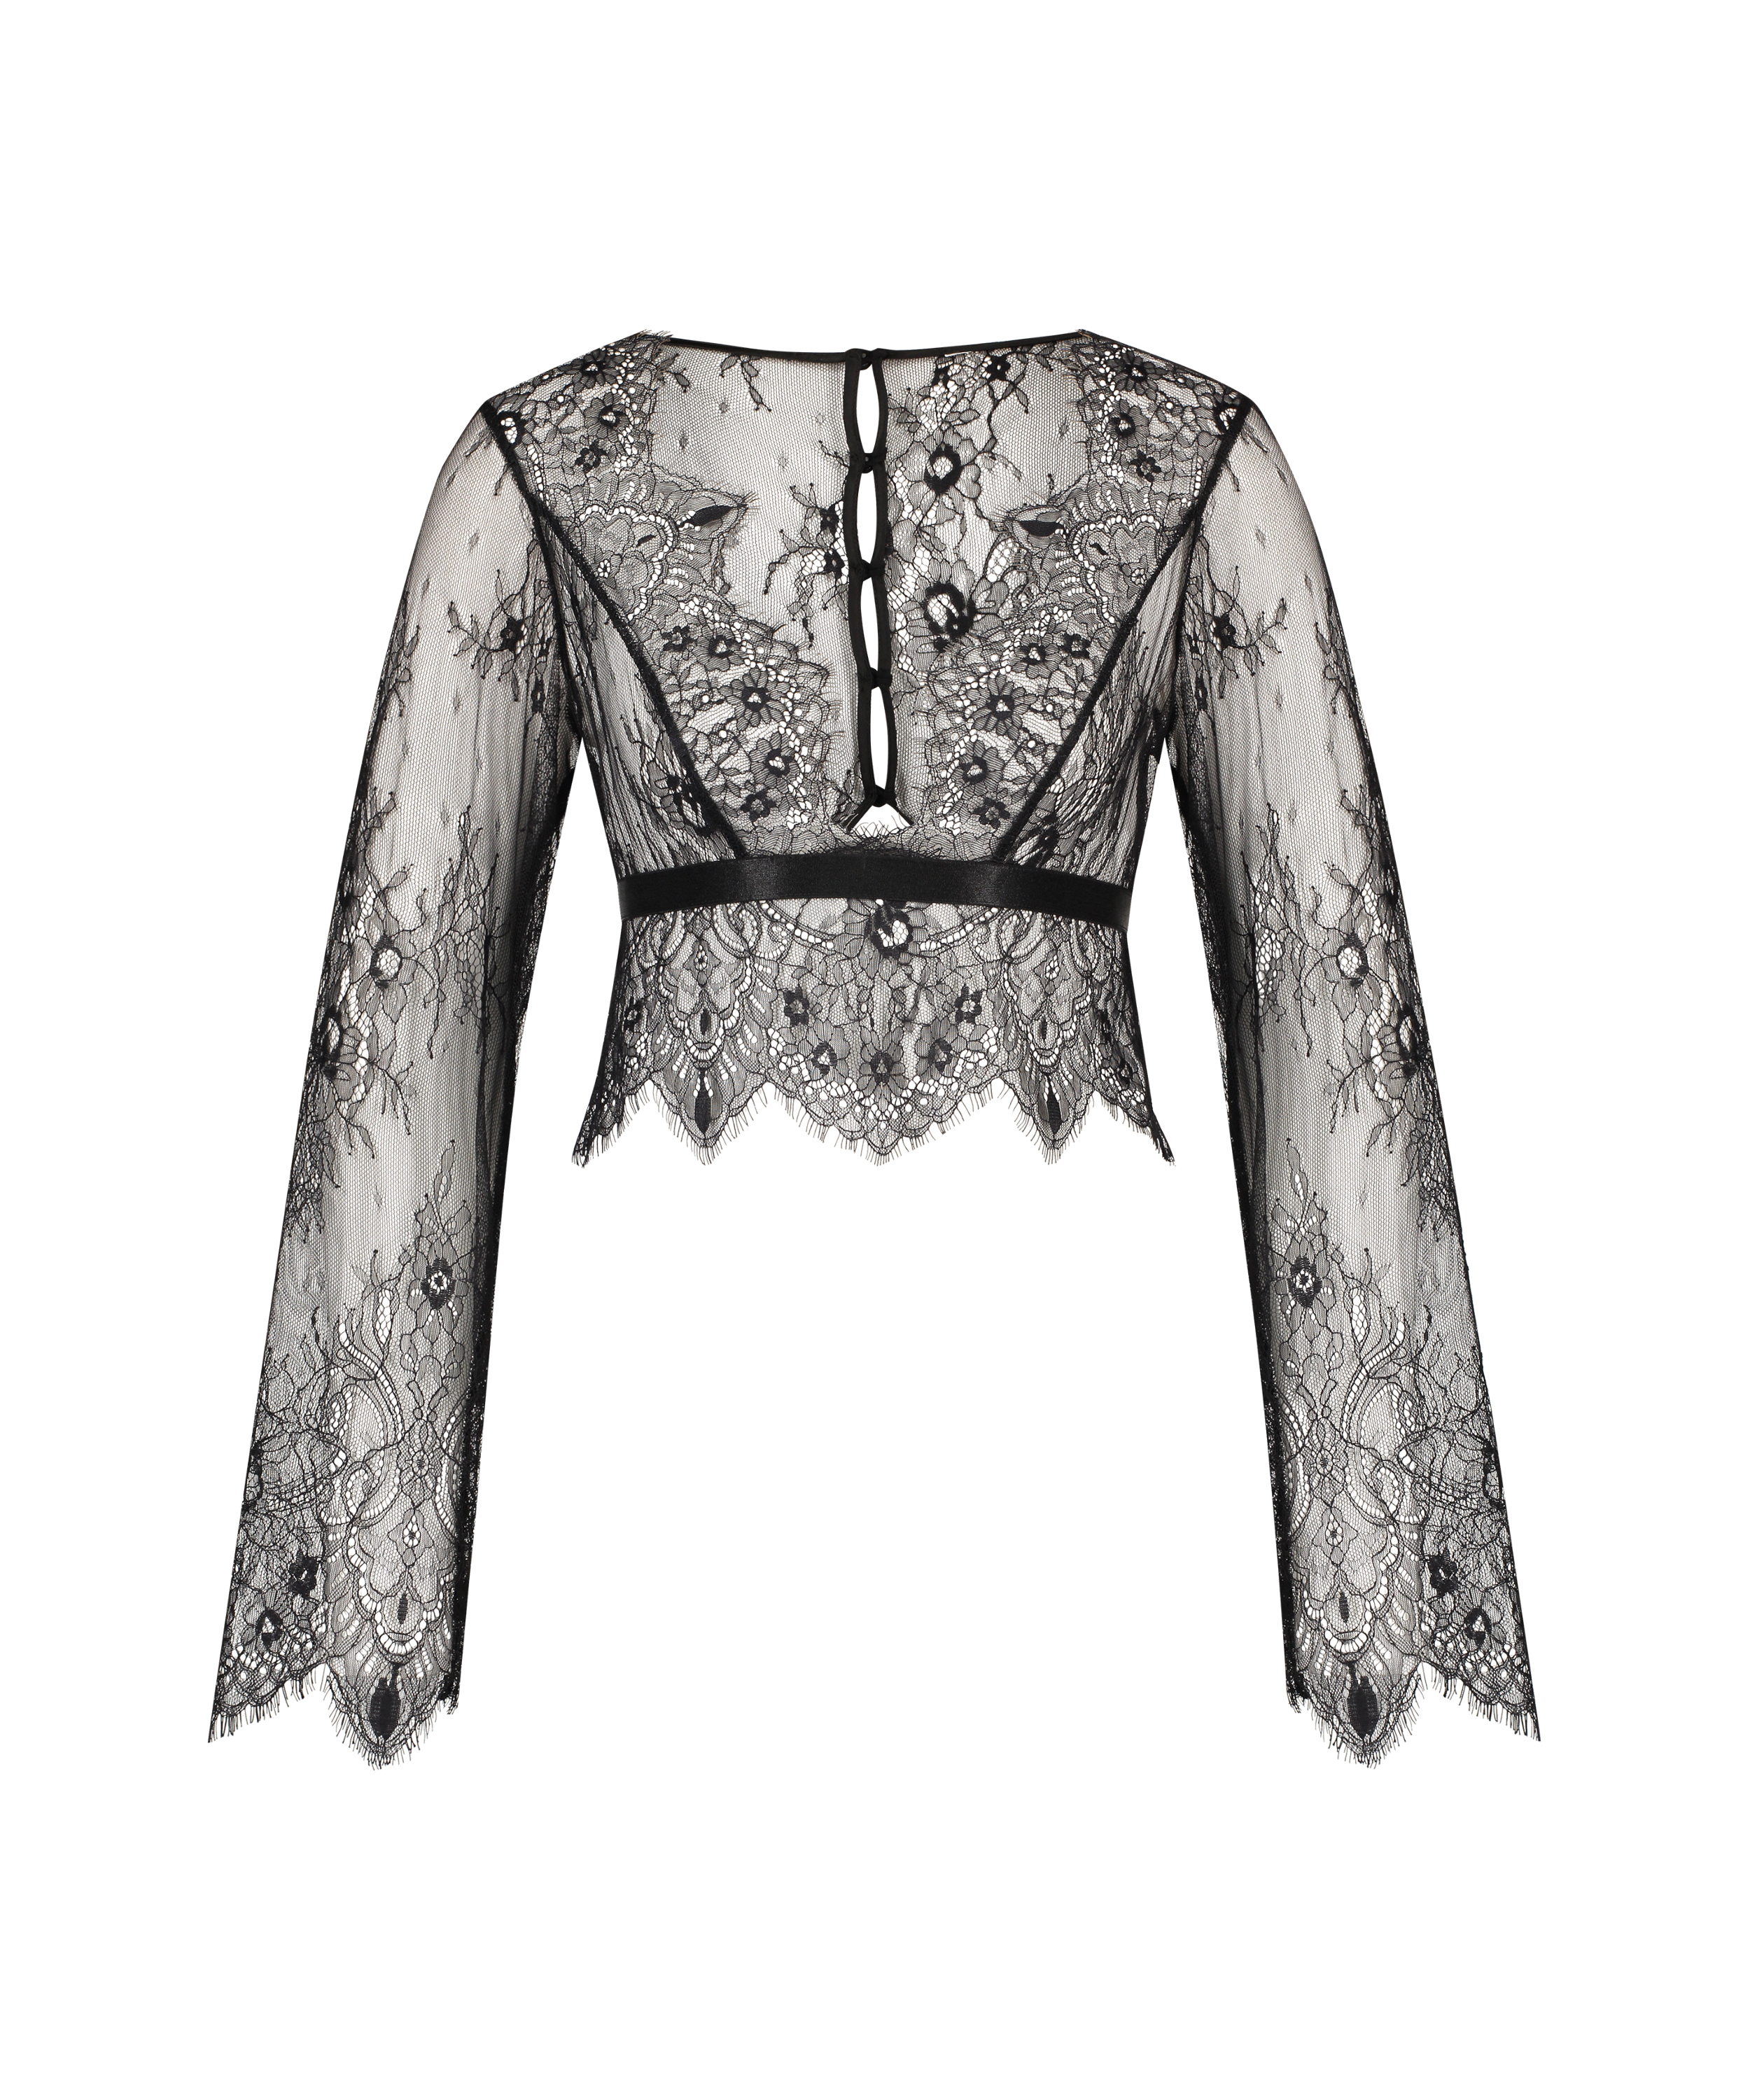 All-over Lace Top, Black, main